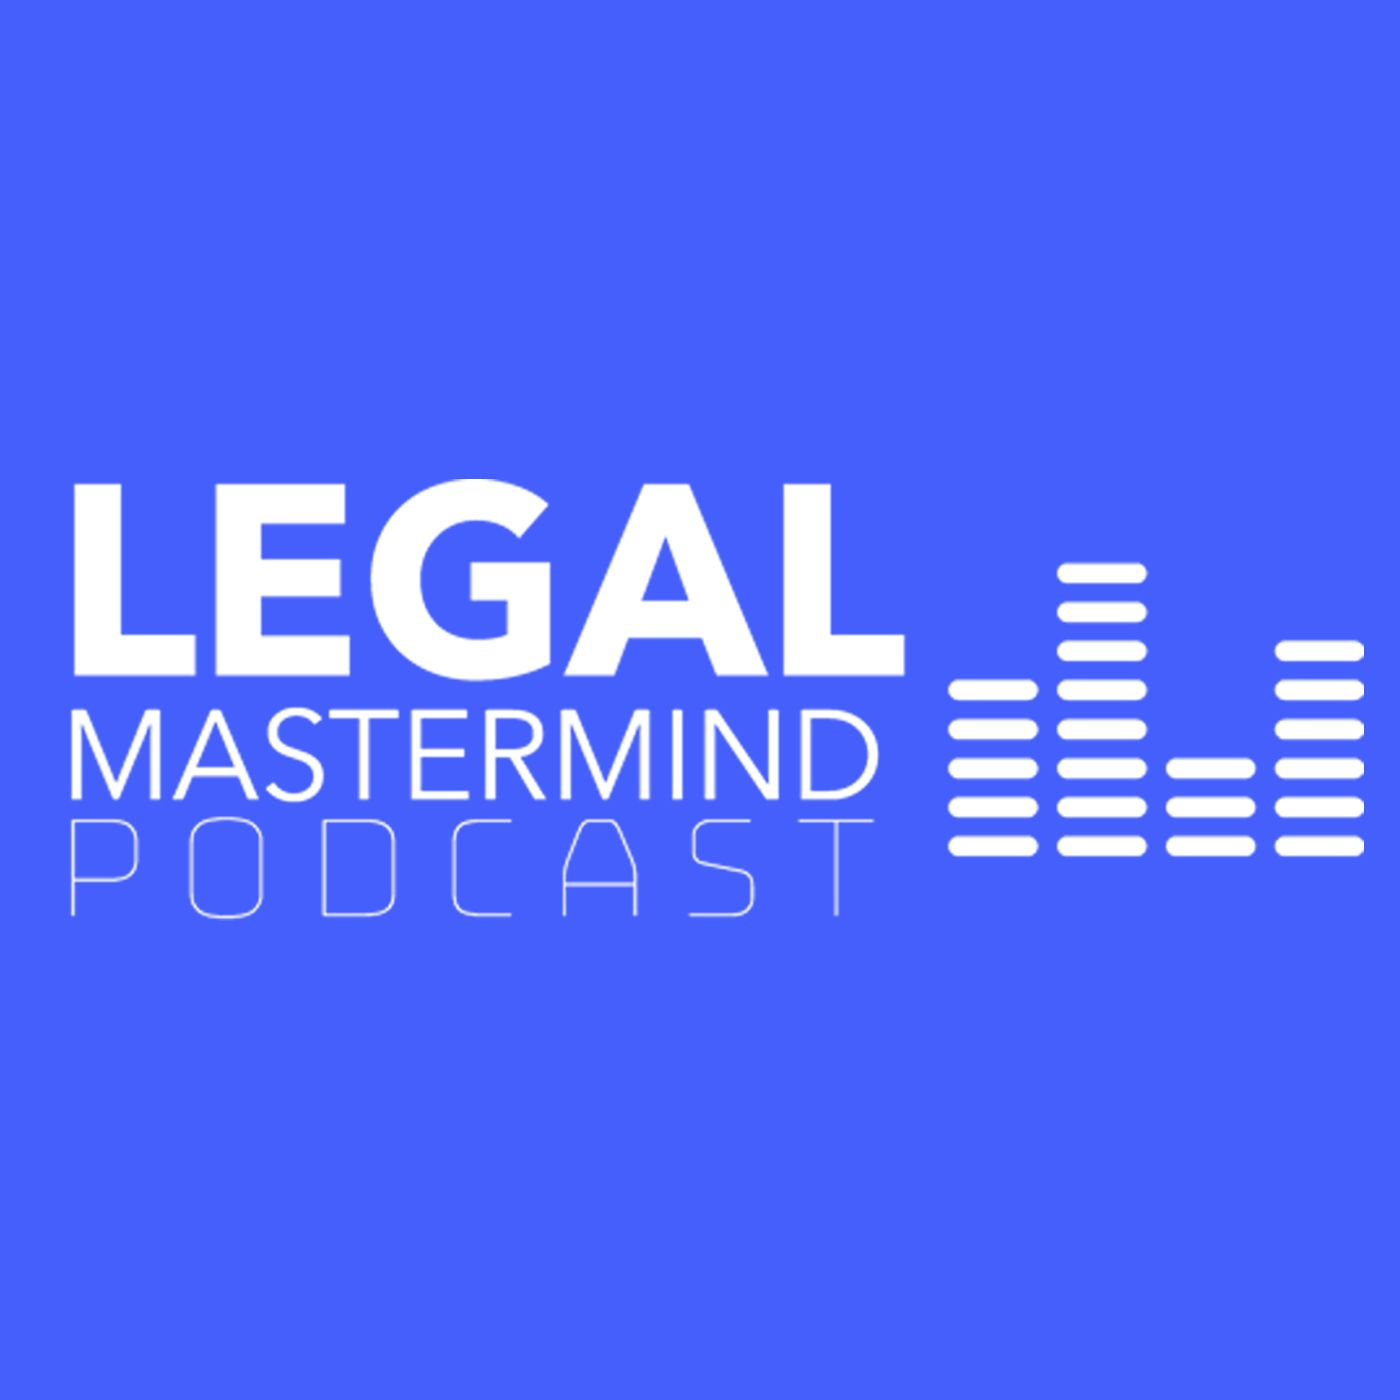 EP 67 - Kirk Smith - How Lawyers Can Add Value and Enhance Experiences for Clients That Have Been Taken Advantage Of